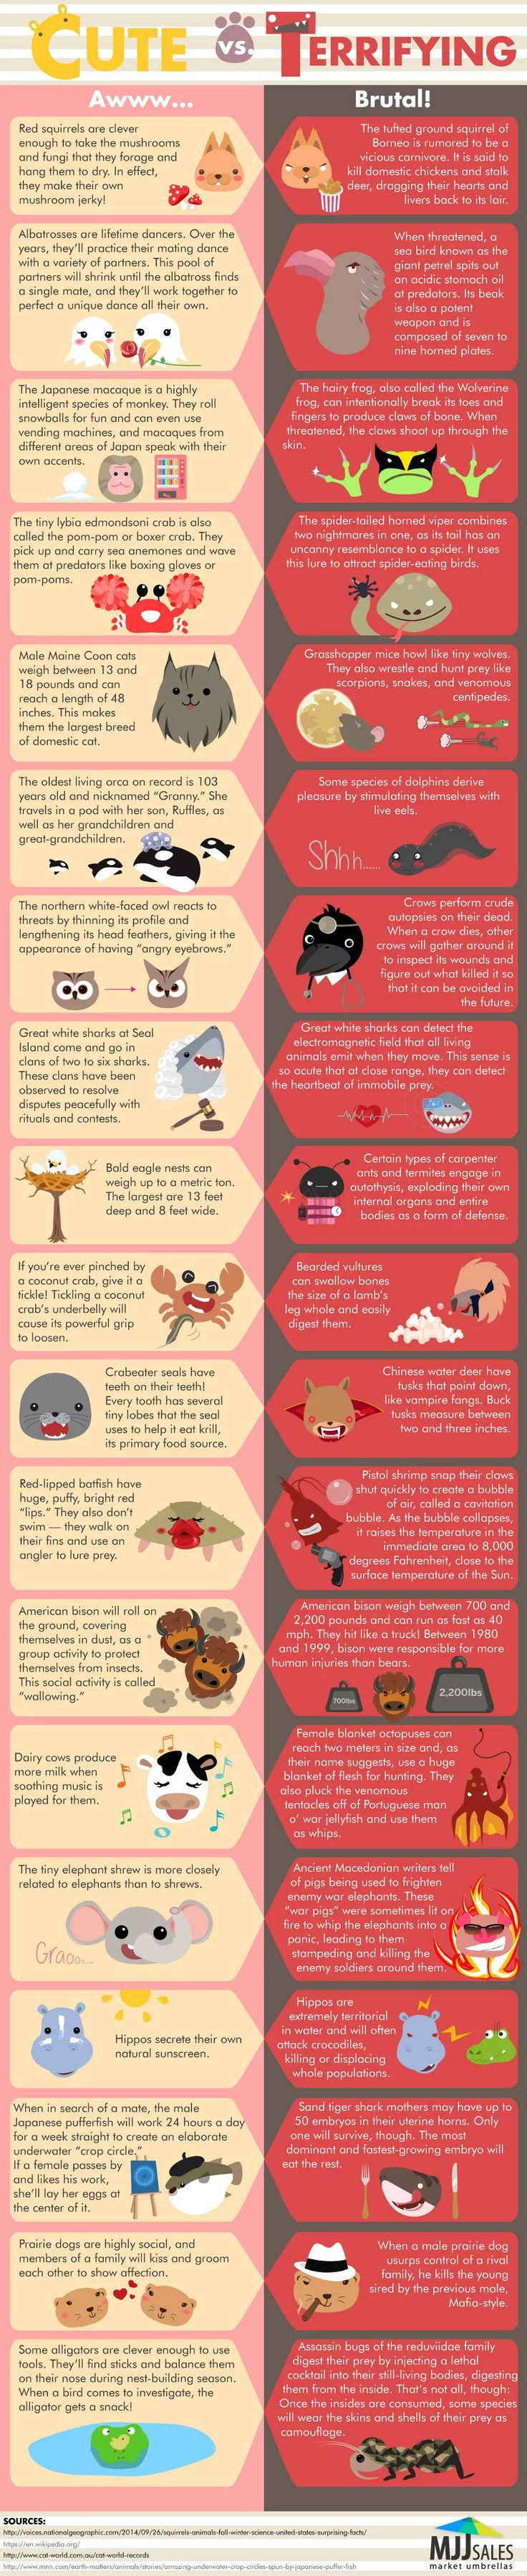 Cute vs Terrifying Facts About Animals #Infographic #Animals #Facts